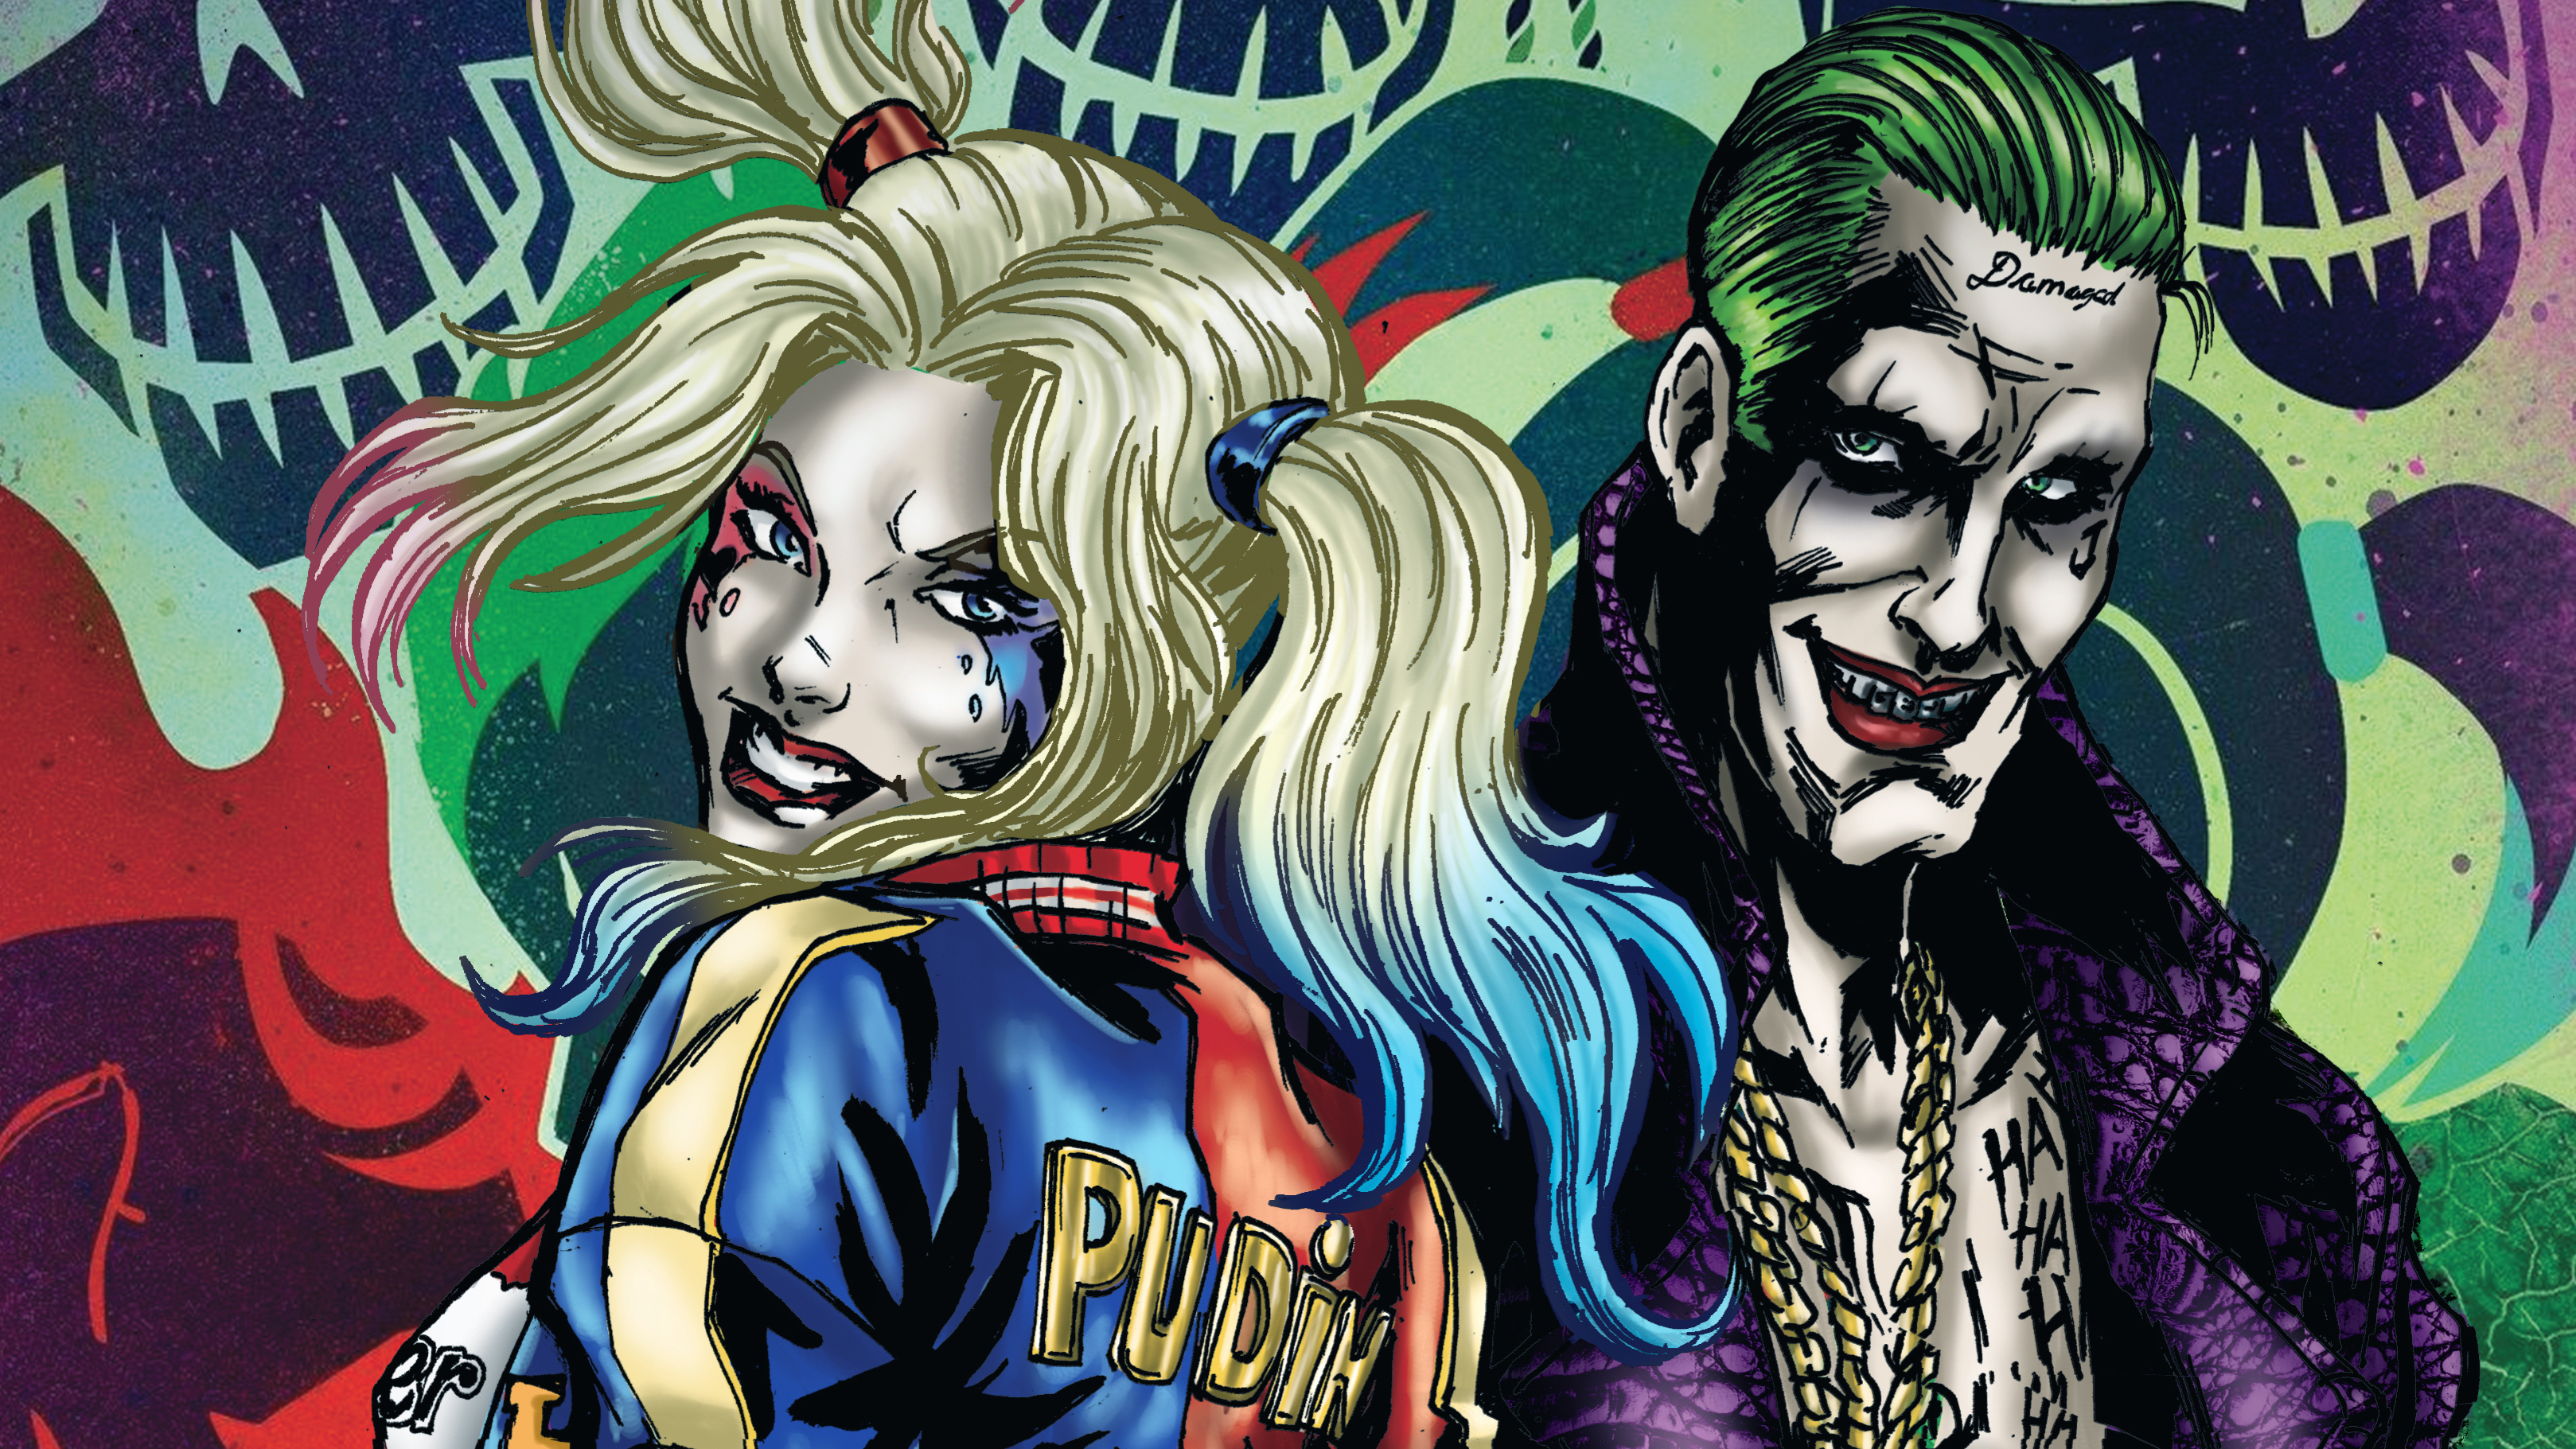 Joker And Harley Quinn Art Hd Superheroes 4k Wallpapers Images Backgrounds Photos And Pictures